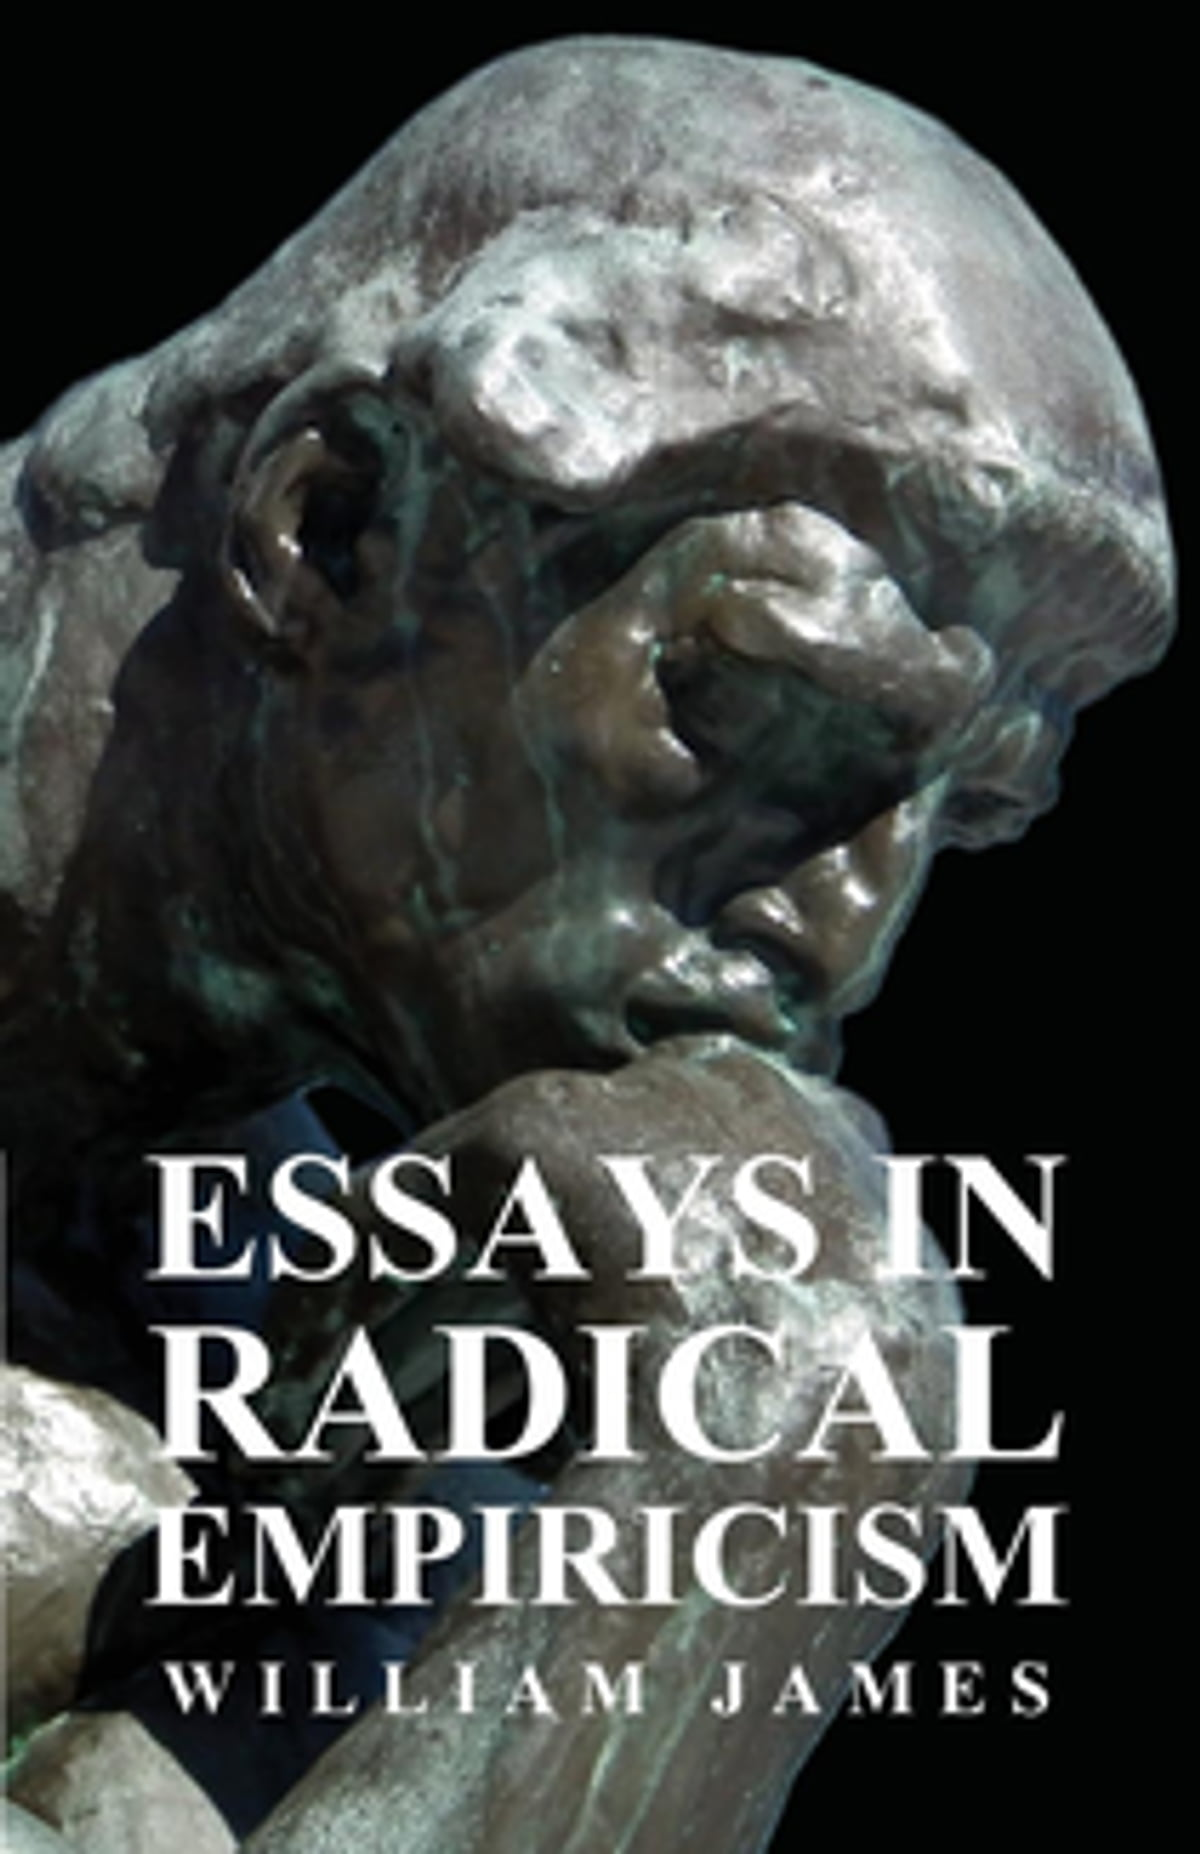 empiricism essay in radical Animal drive and the learning process : an essay toward radical empiricism  with a supplementary essay on this material world by harold chapman brown imprint.